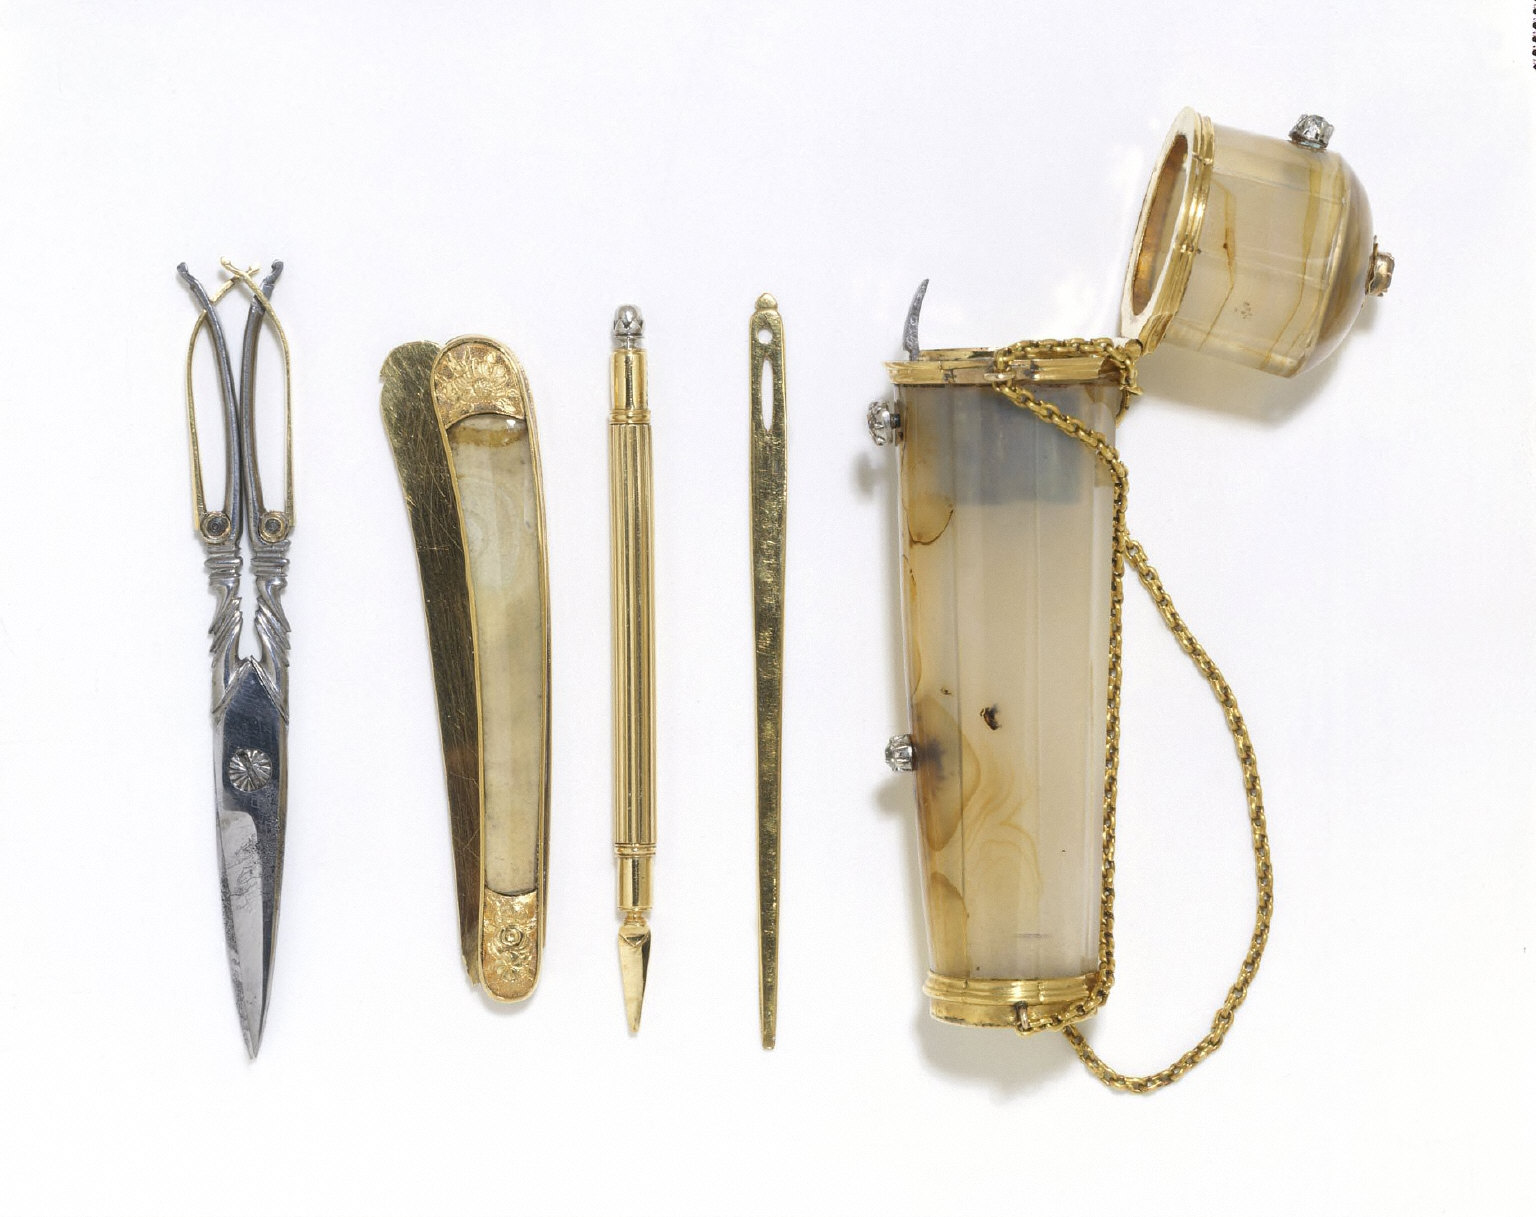 ETUI (case), a gift from Queen Anne